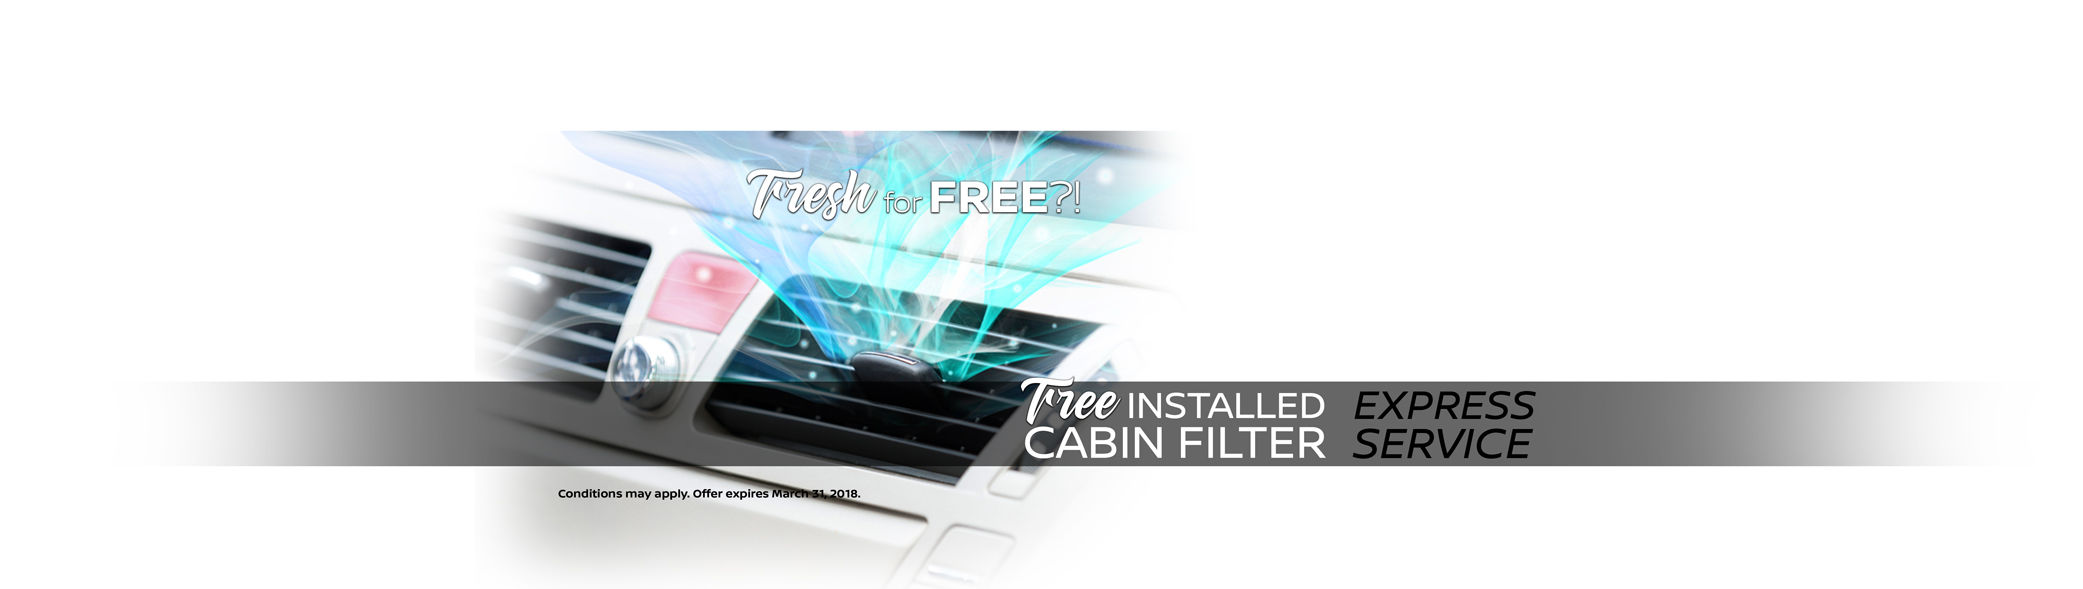 Free Installed Cabin Filter